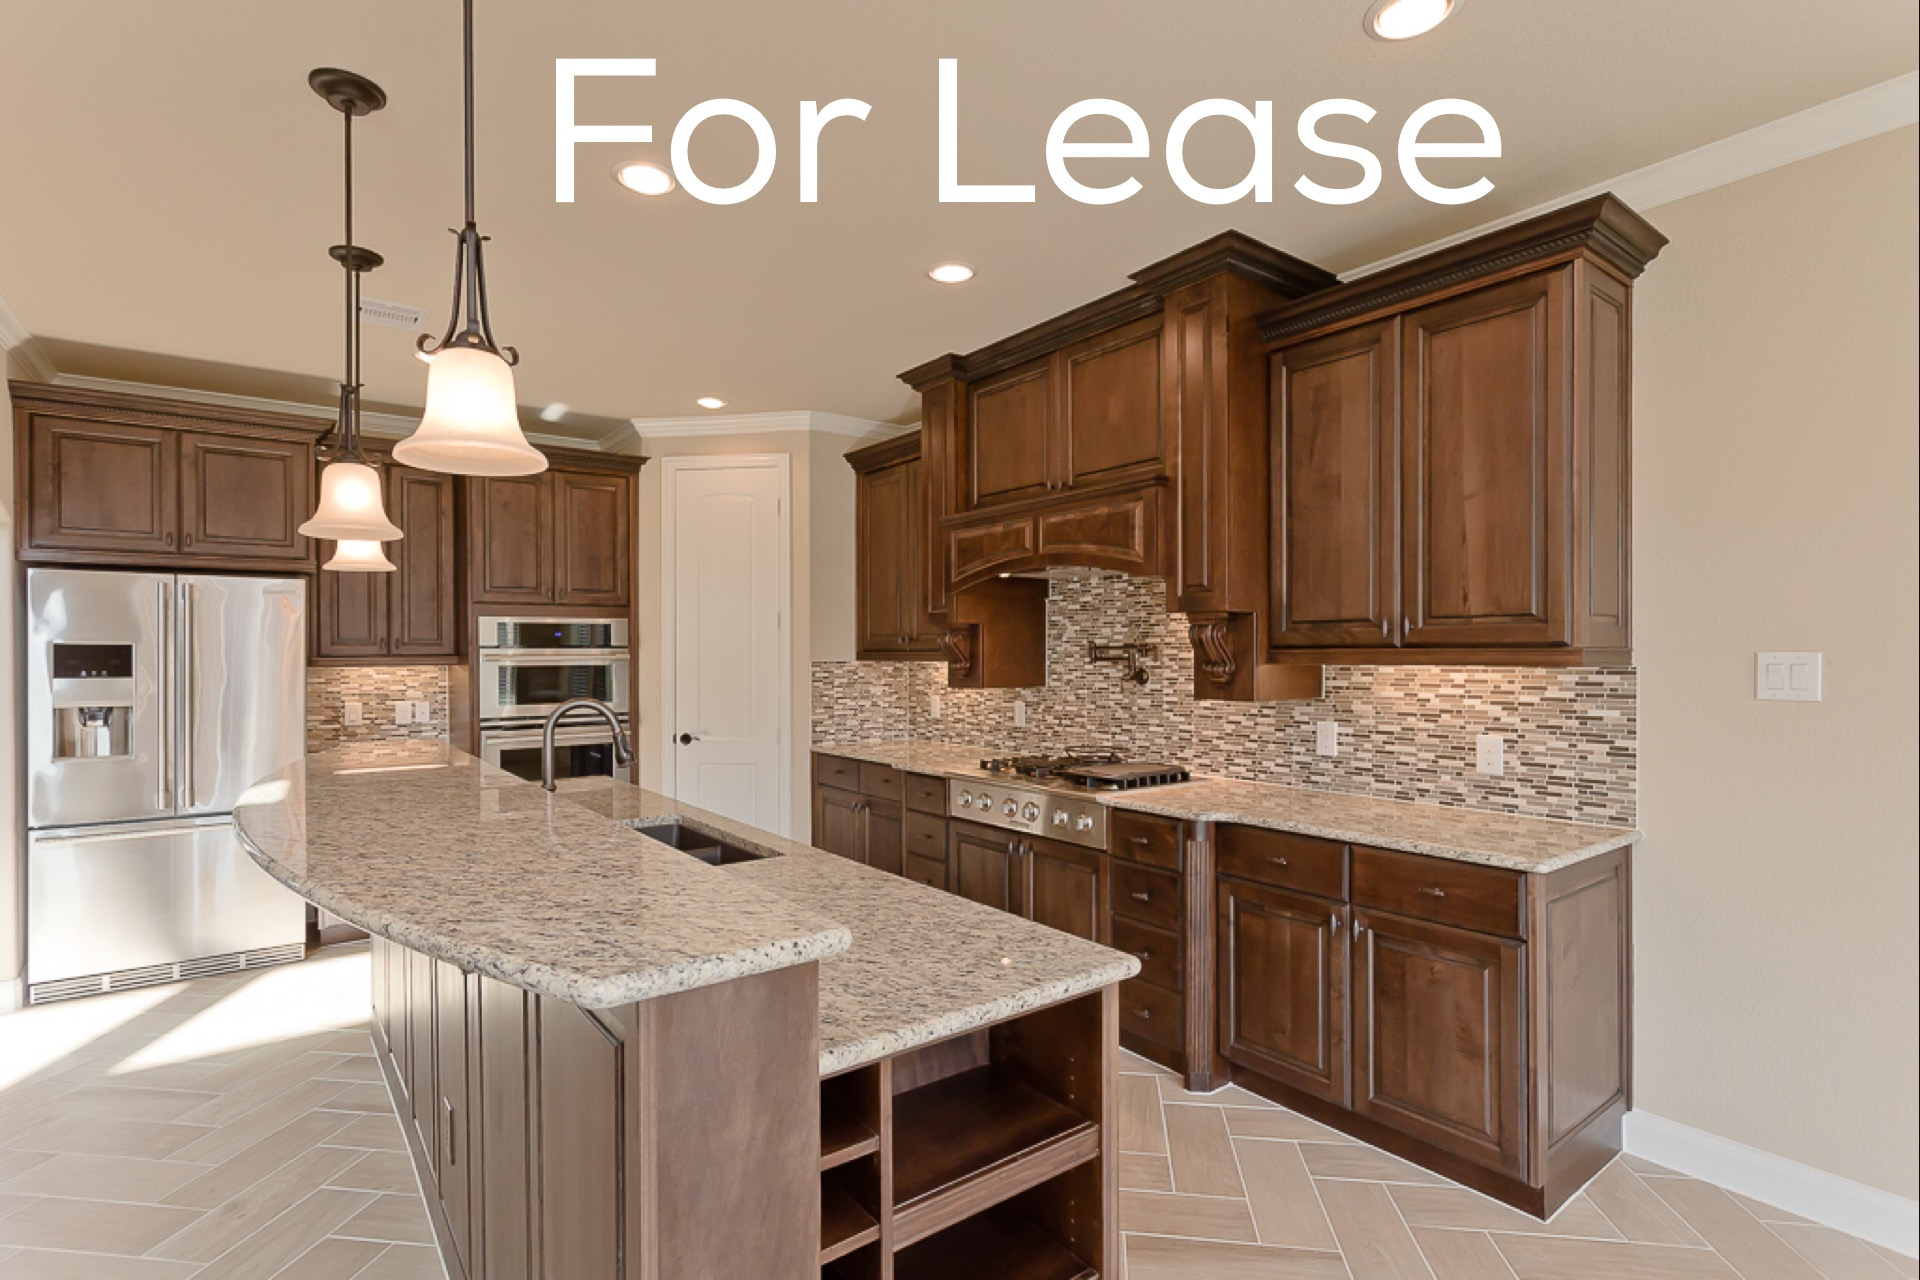 leasing a home in houston tx and surrounding areas sugar land